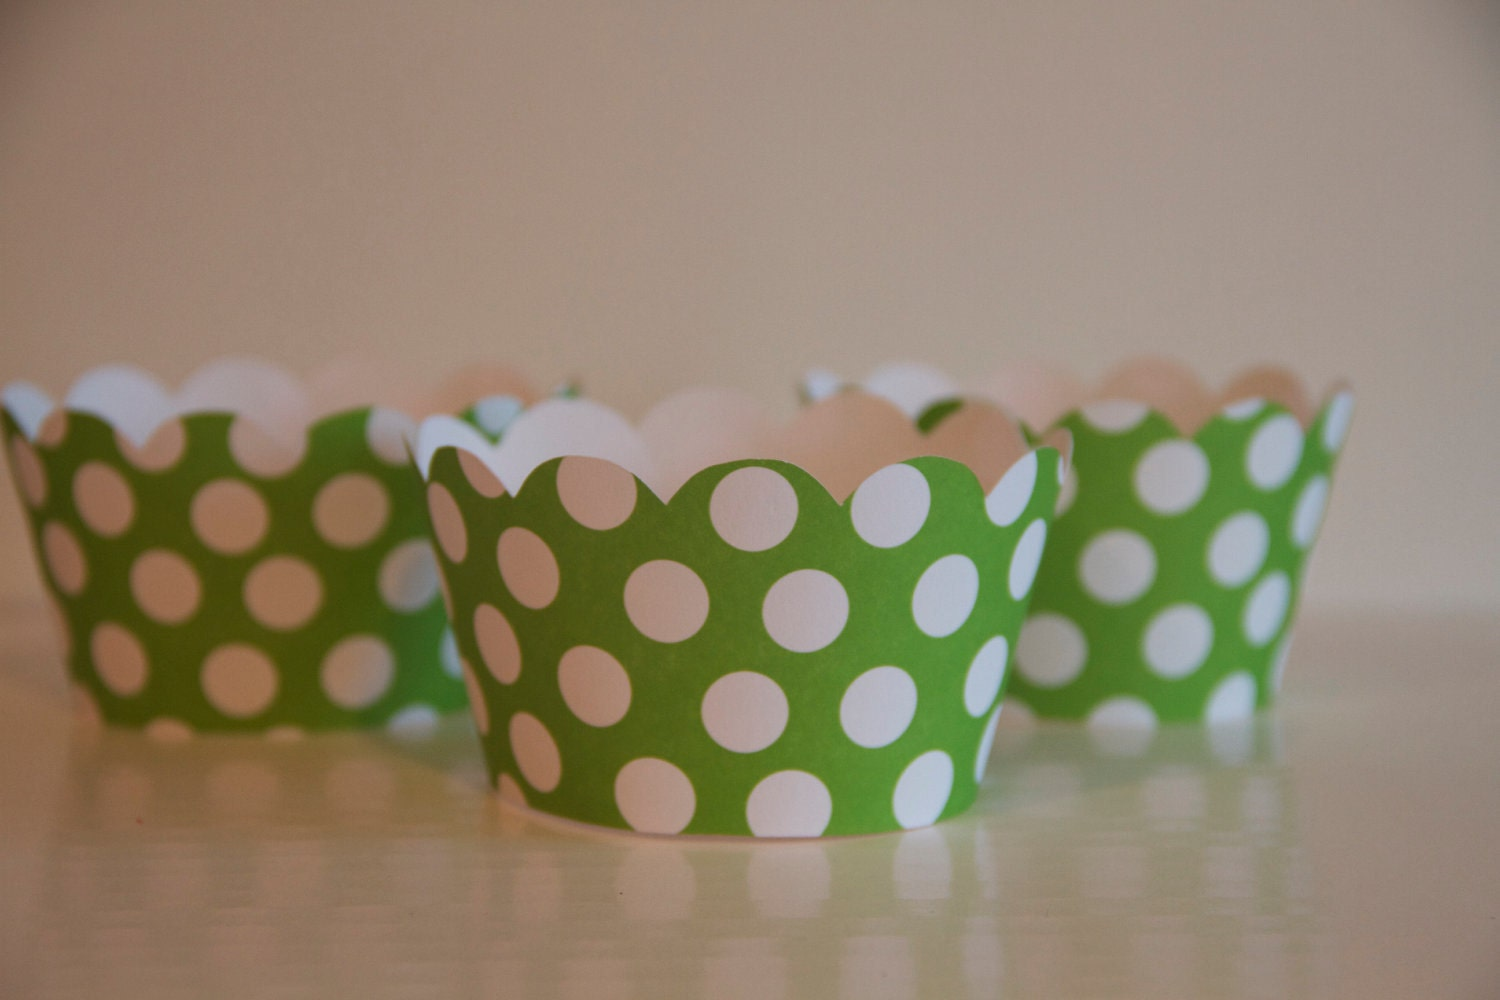 Green and White Polka Dot Cupcake Wrappers